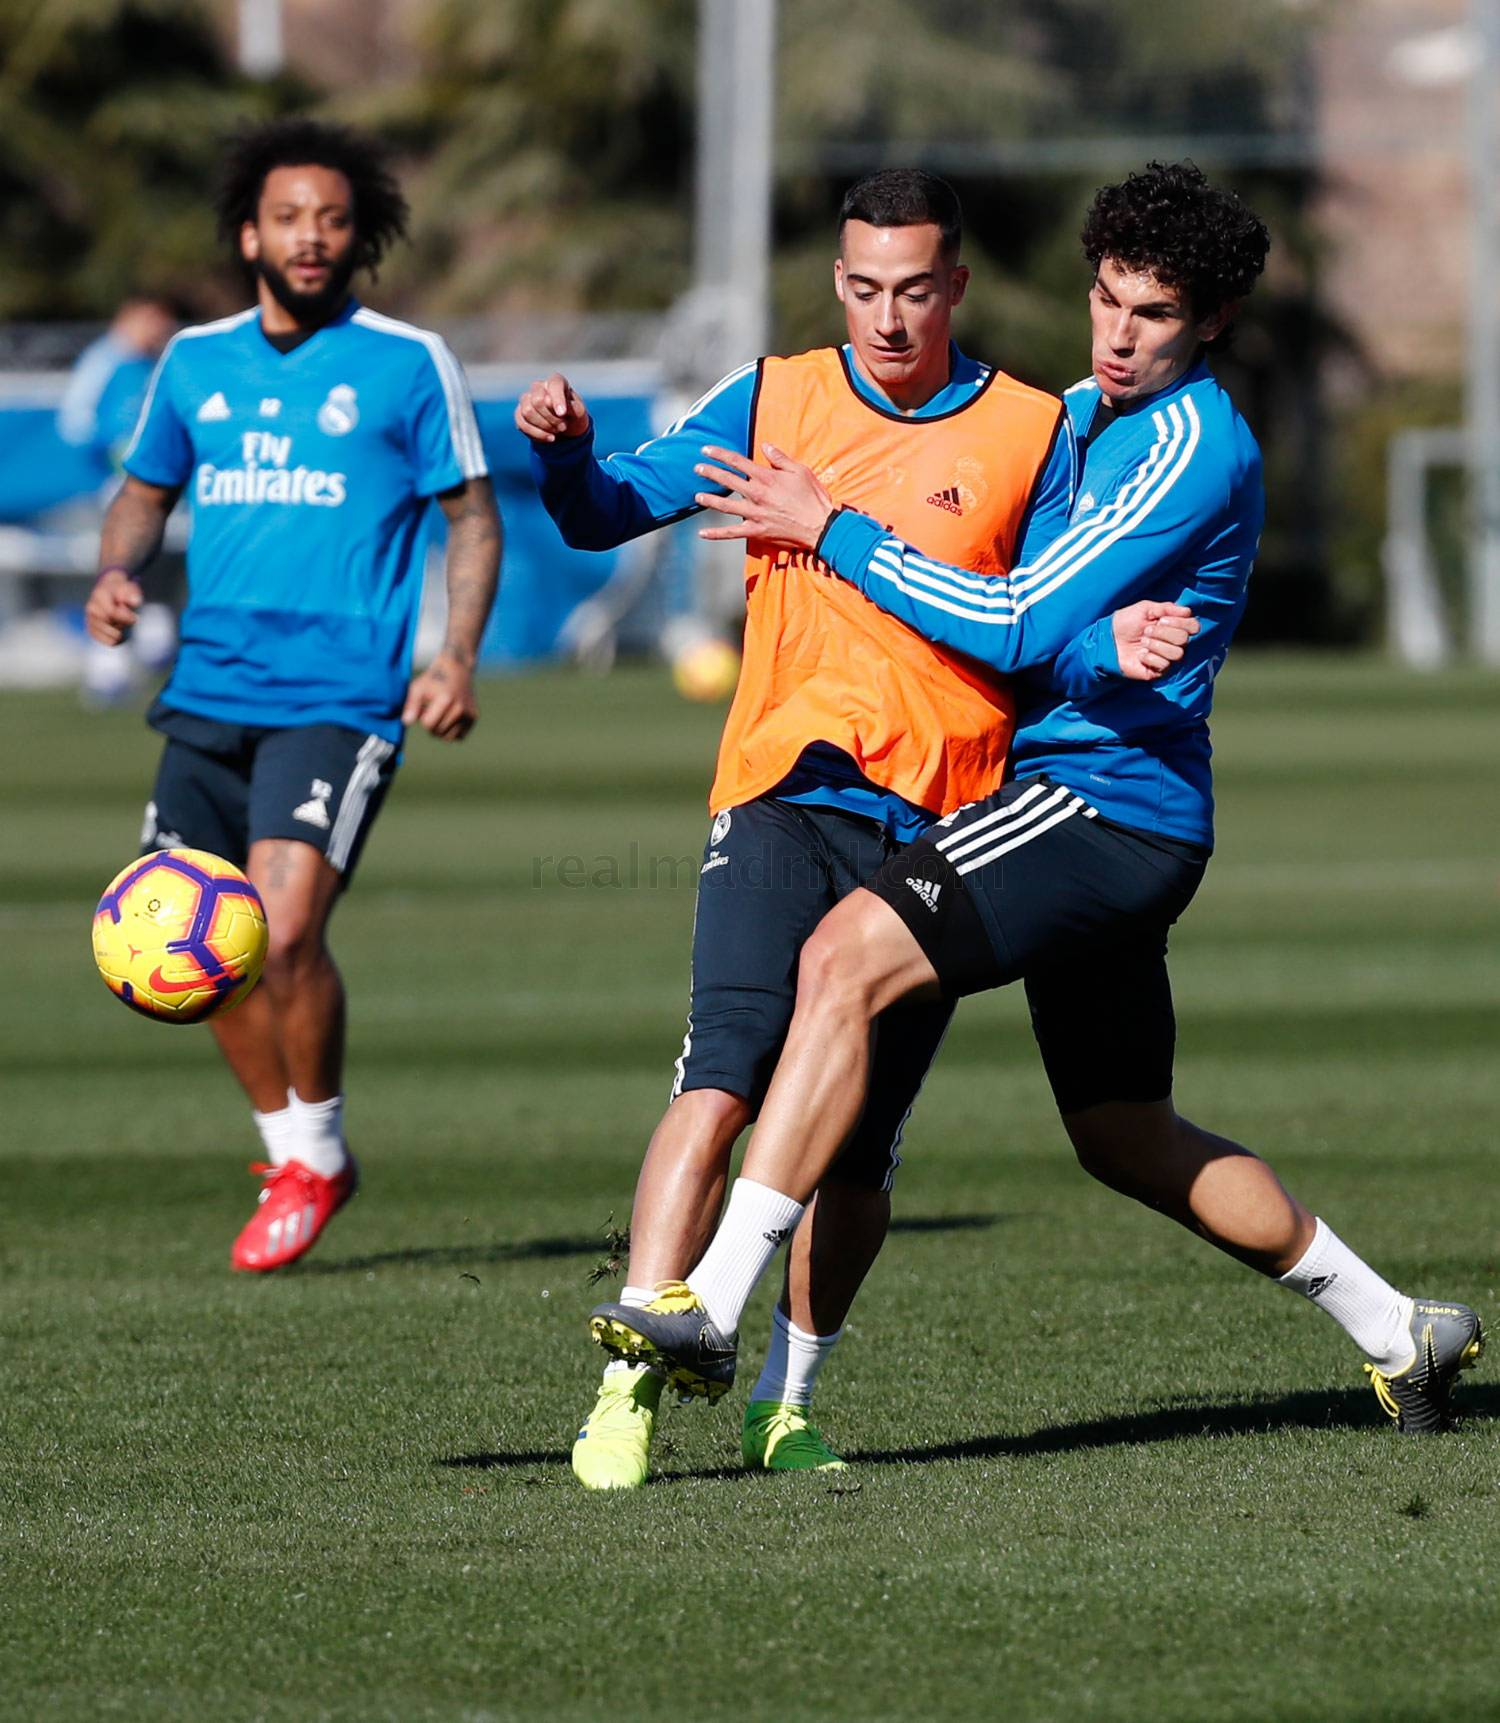 Real Madrid - Entrenamiento del Real Madrid - 16-02-2019